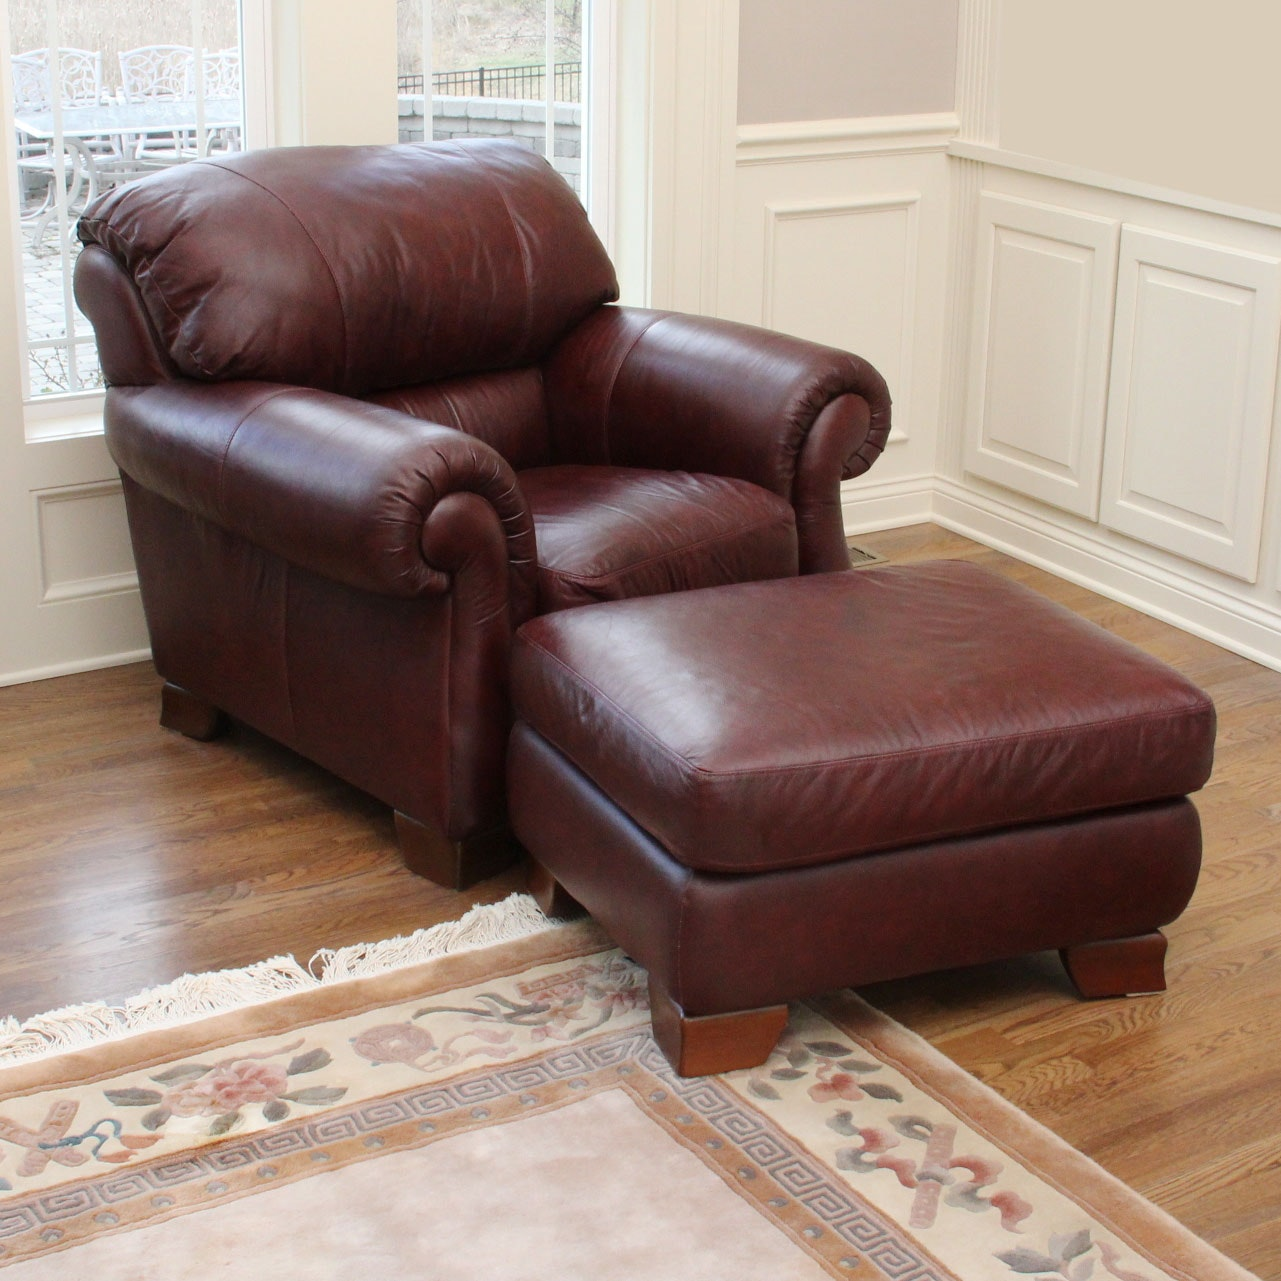 Italsofa Leather Chair And Ottoman ...